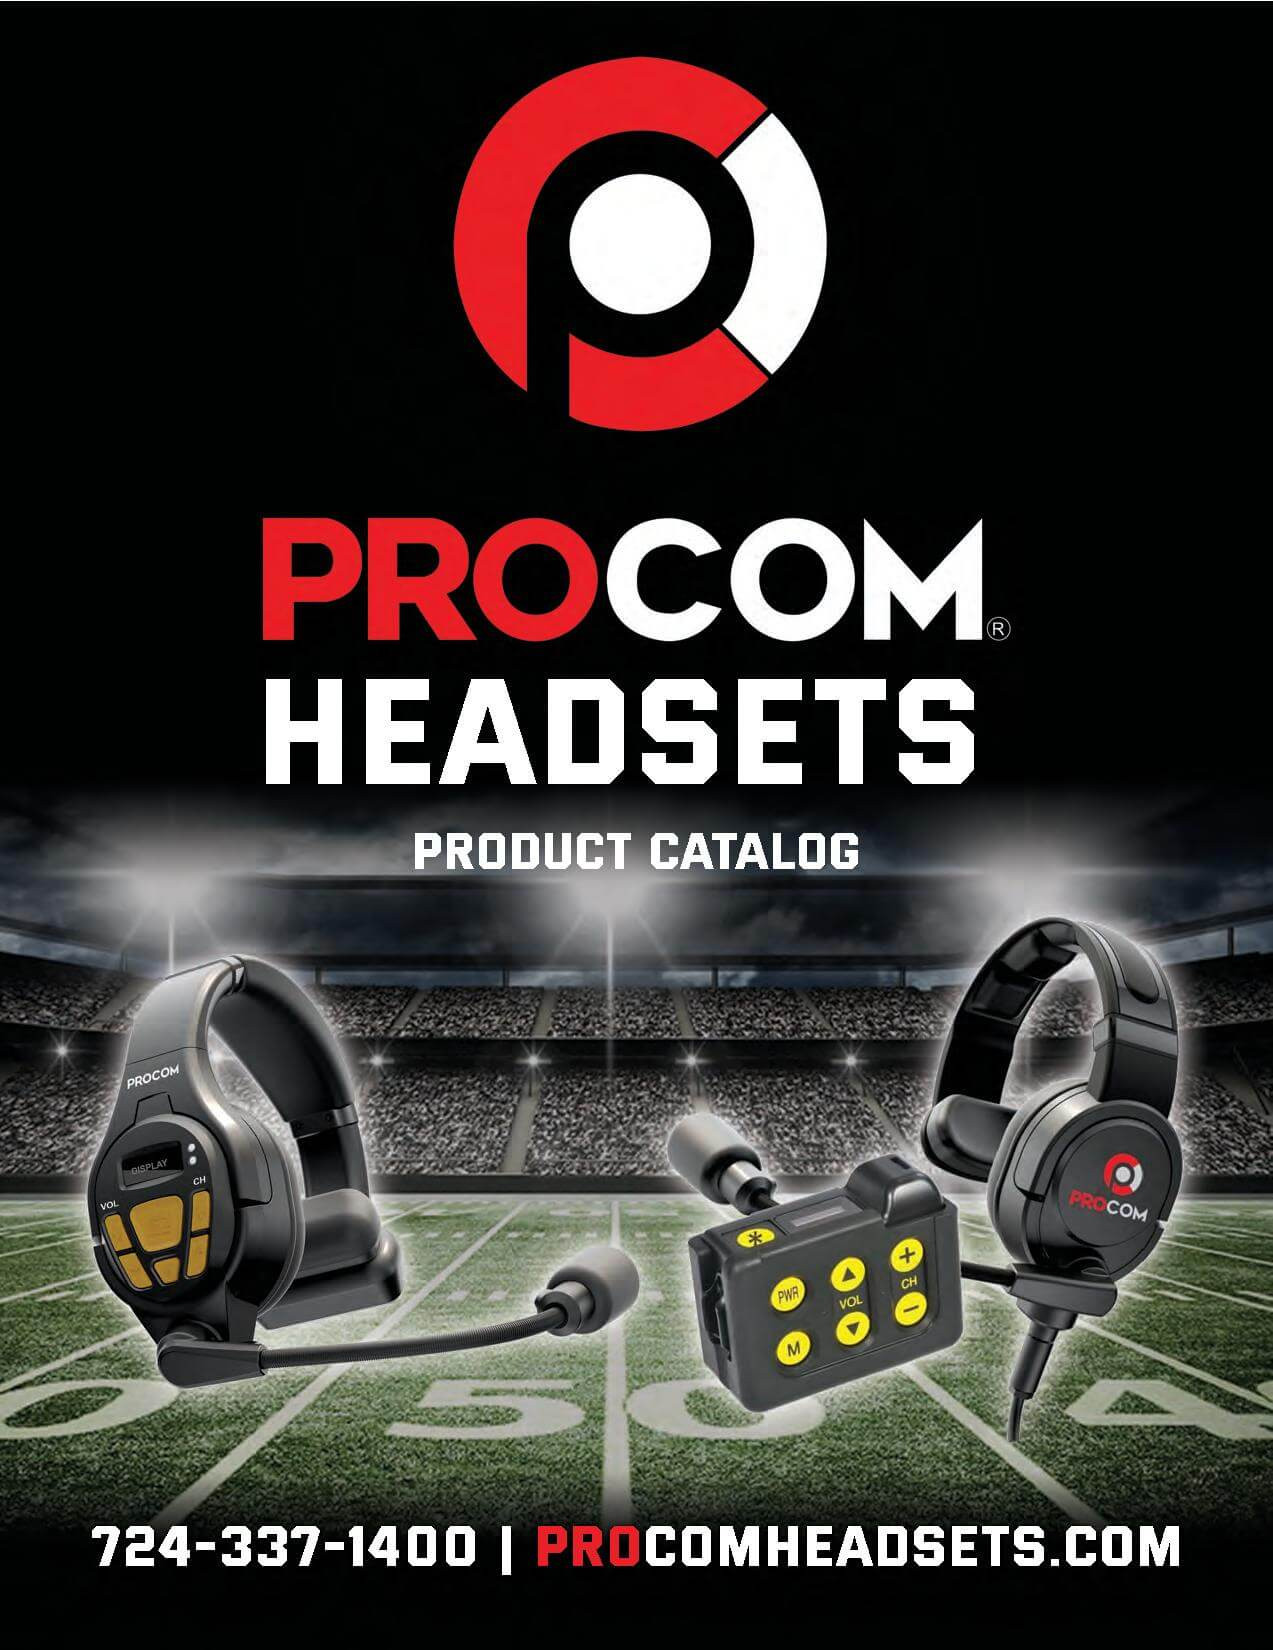 ProCom Products Catalog Cover